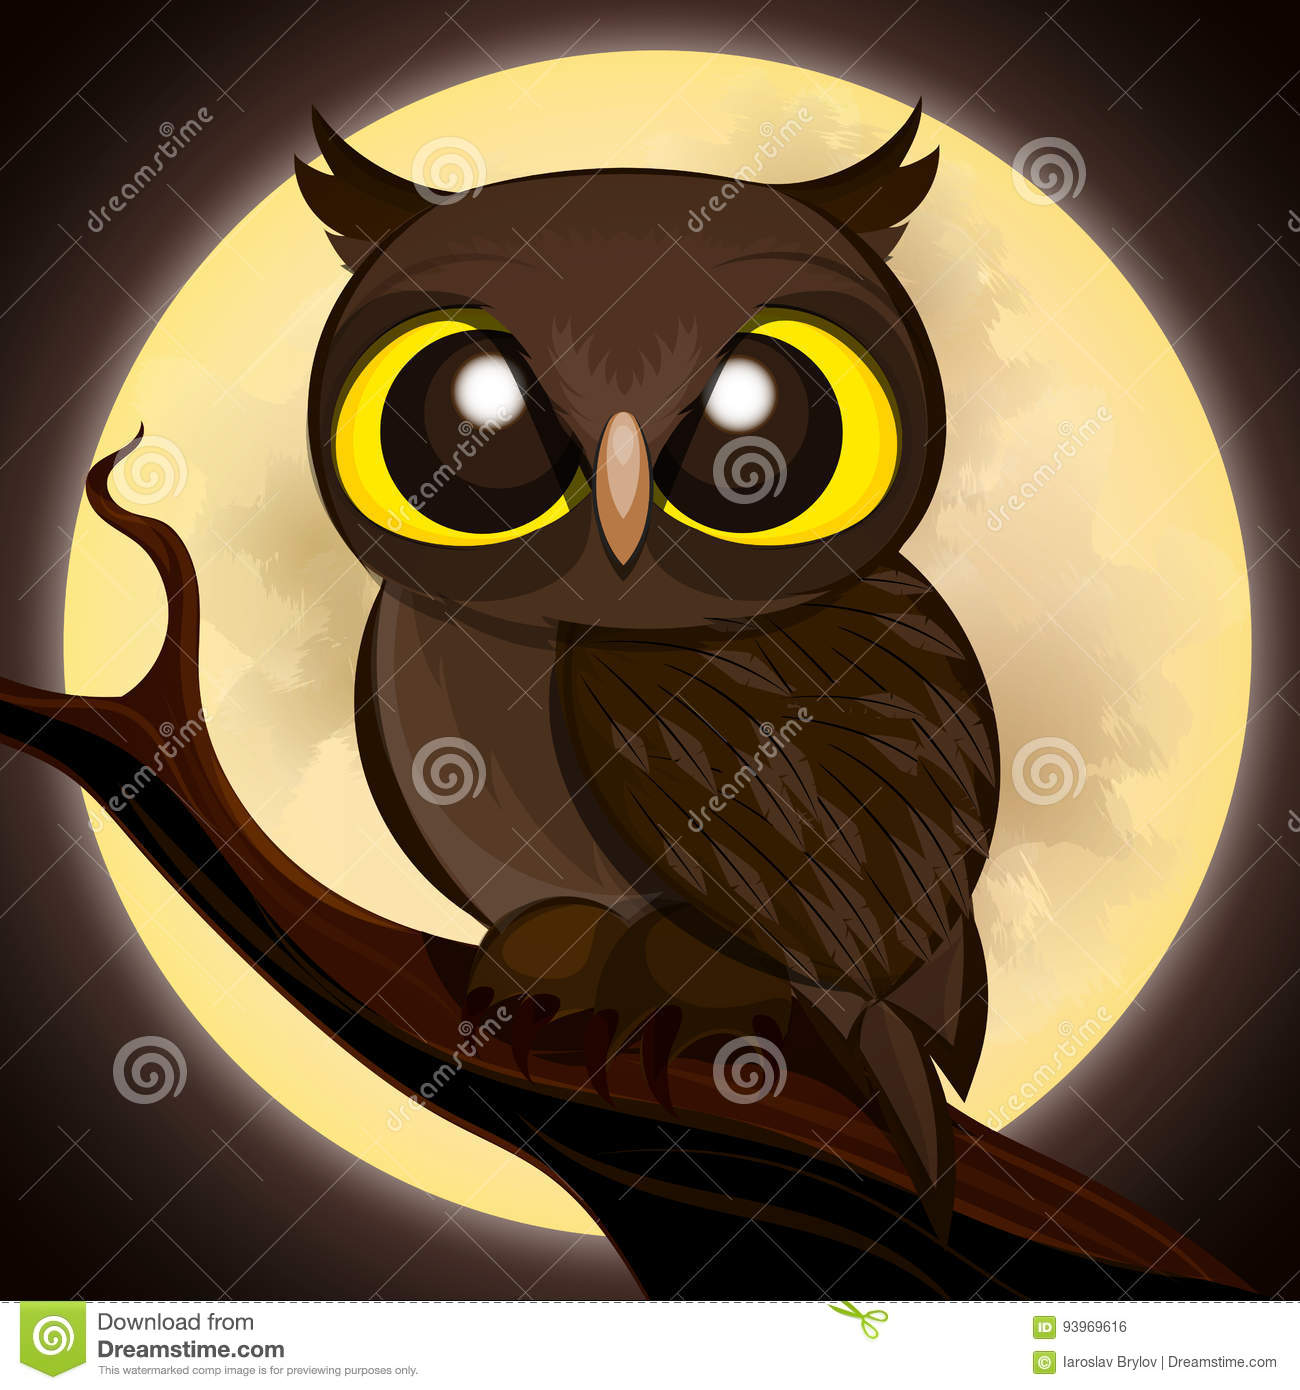 halloween poster owl stock vector. illustration of happy - 93969616